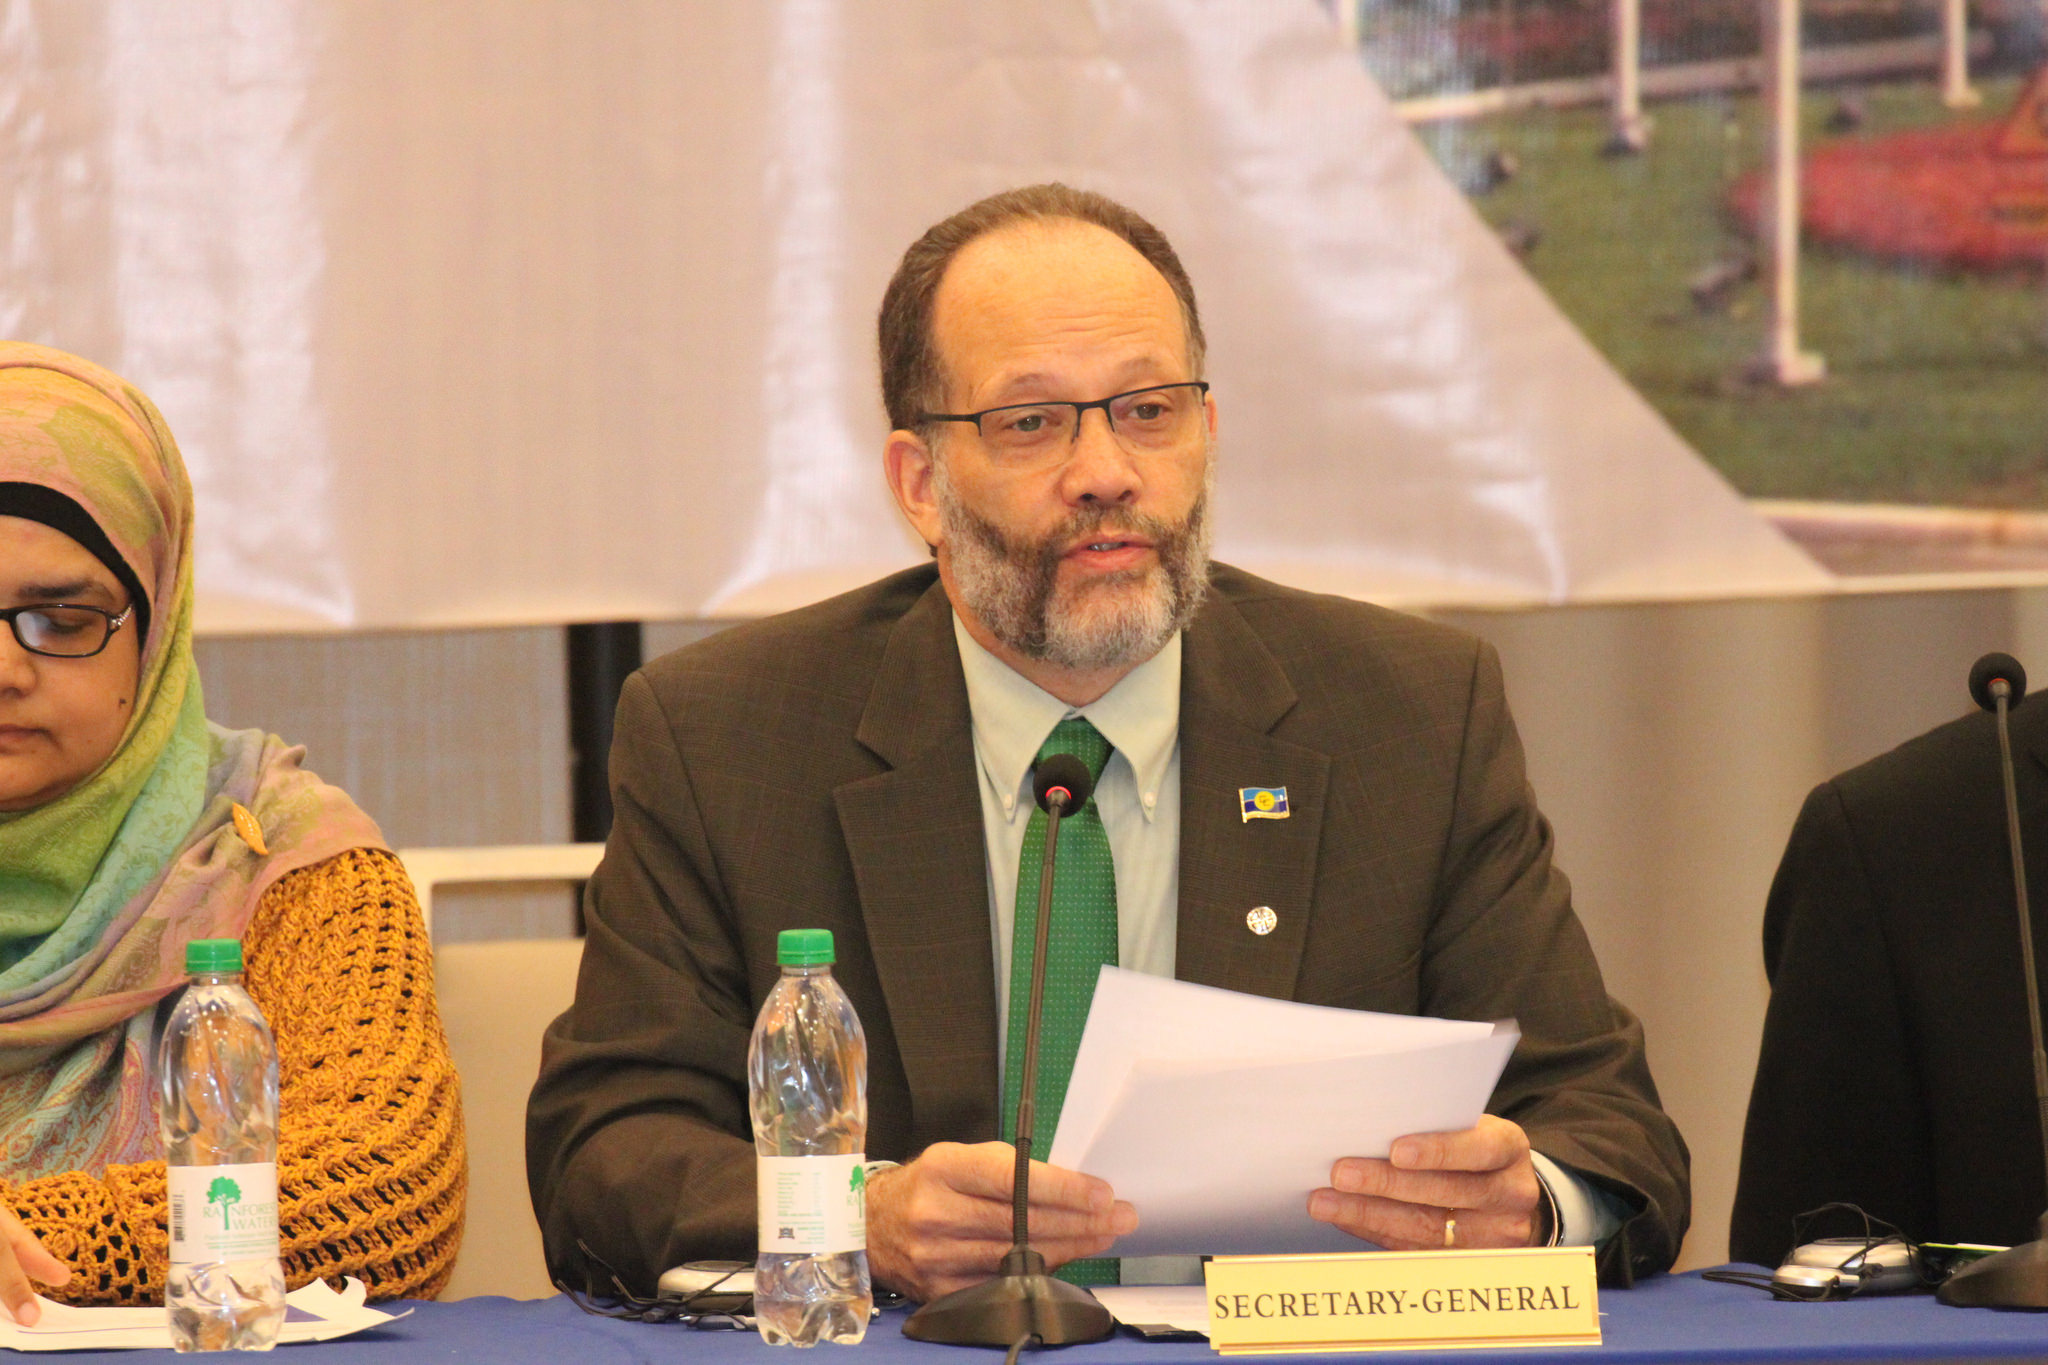 CARICOM Secretary-General, Ambassador Irwin LaRocque addresses the opening of the Meeting